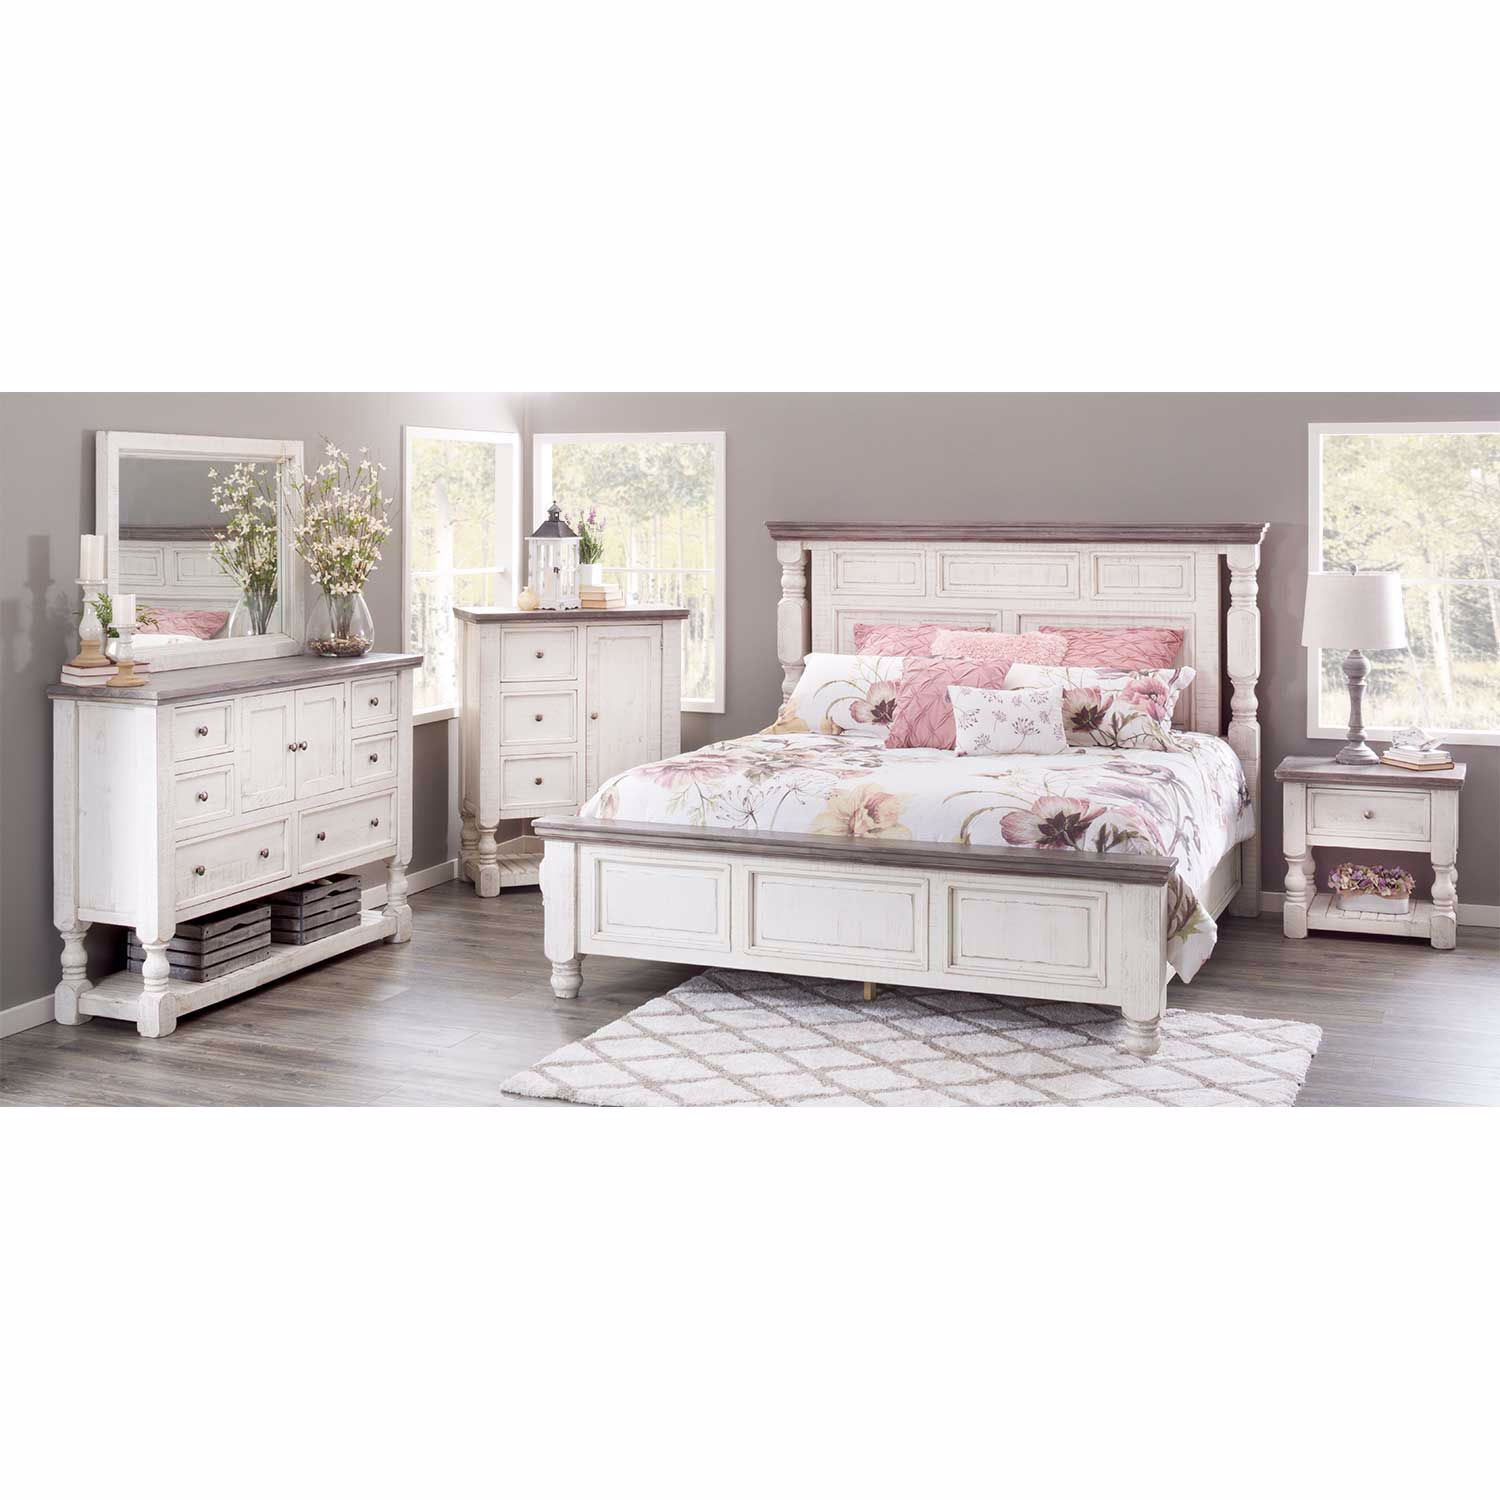 Stone Collection 5 Piece Bedroom Set Ifd4690cht Dsr Mir